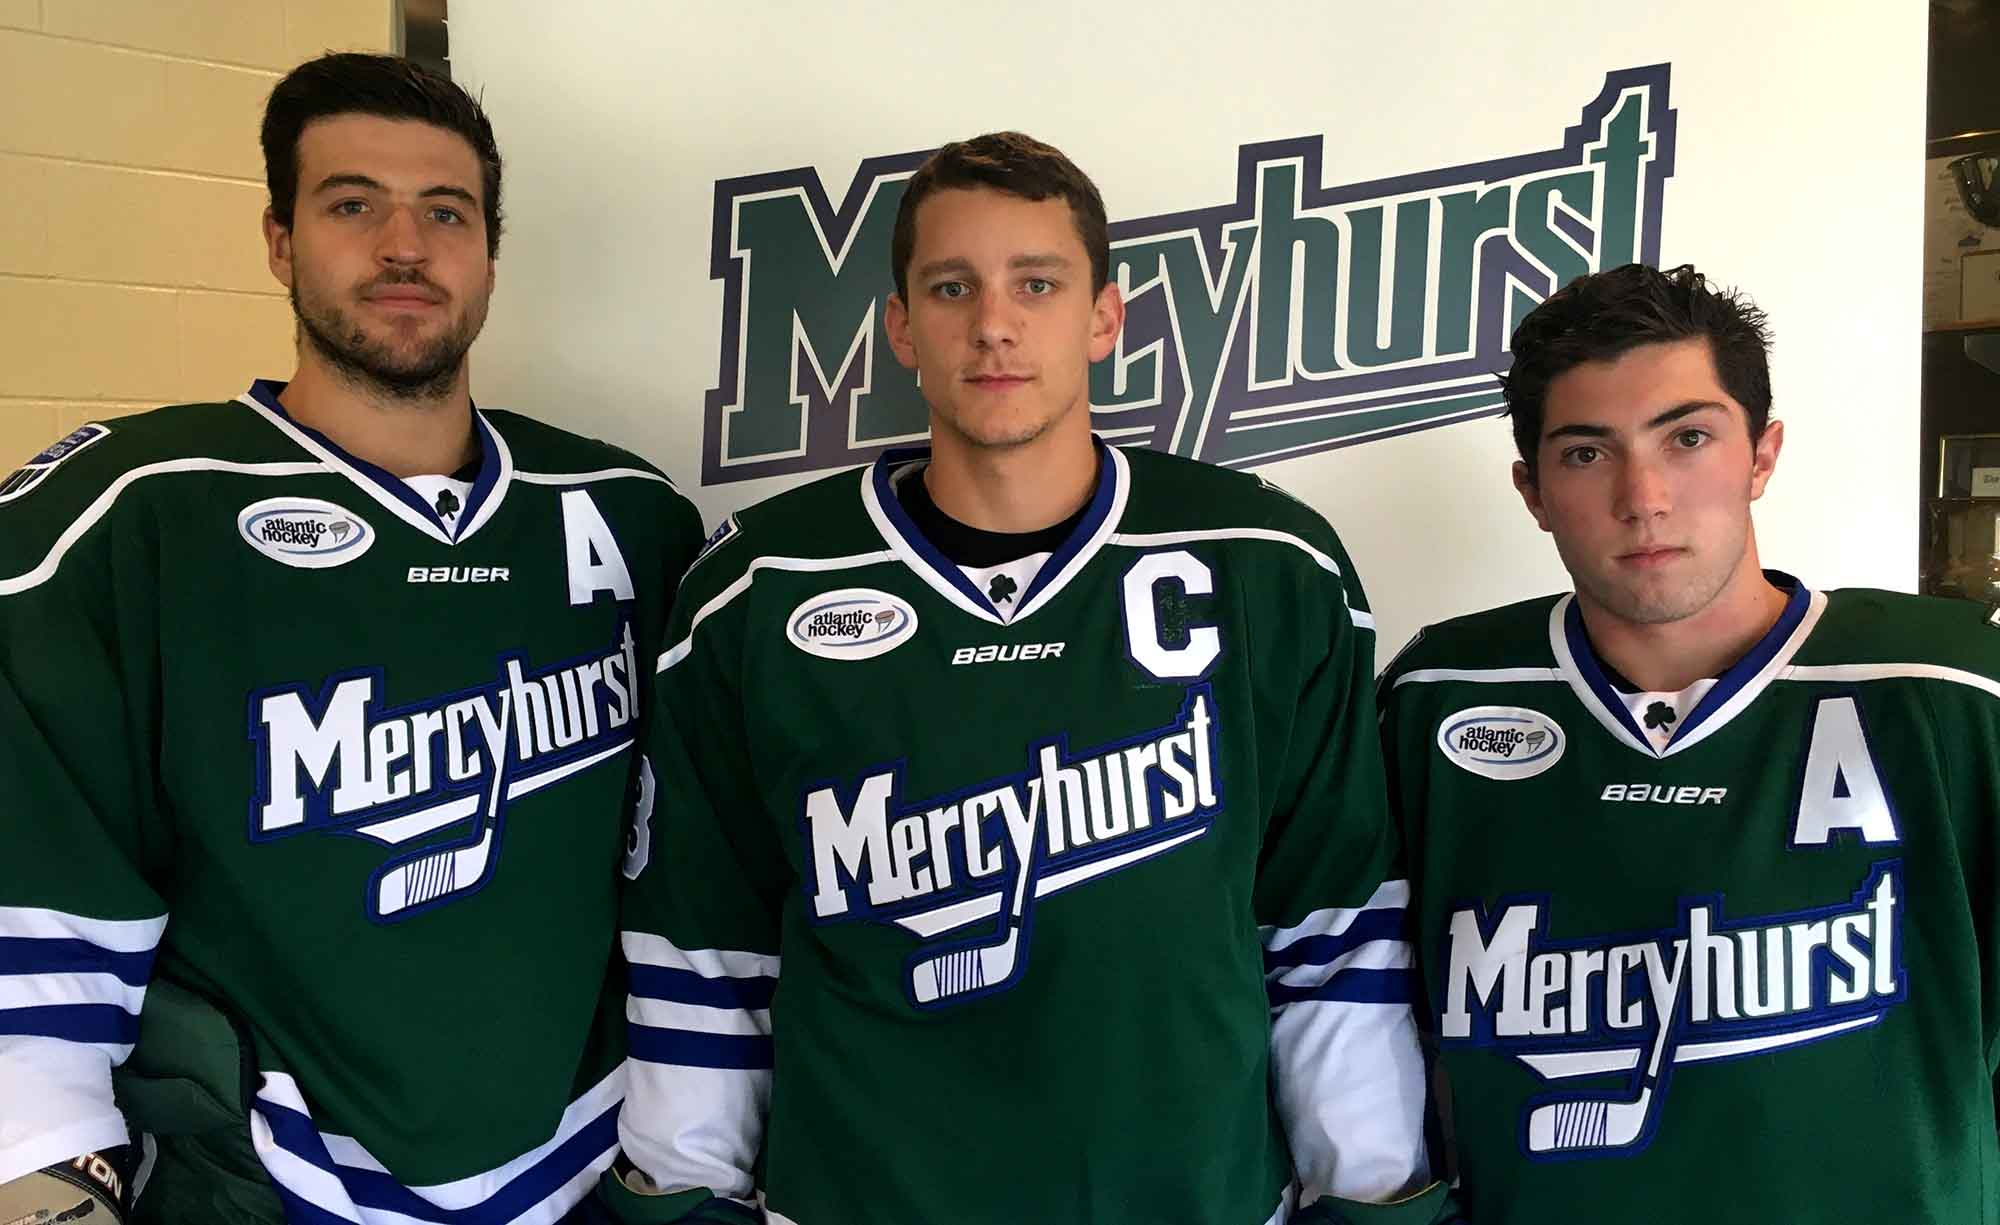 From left to right, Mercyhurst men's ice hockey Alternate Captain Kyle Dutra, Captain Jack Riley and Alternate Captain Derek Barach are ready for Saturday's exhibition game.